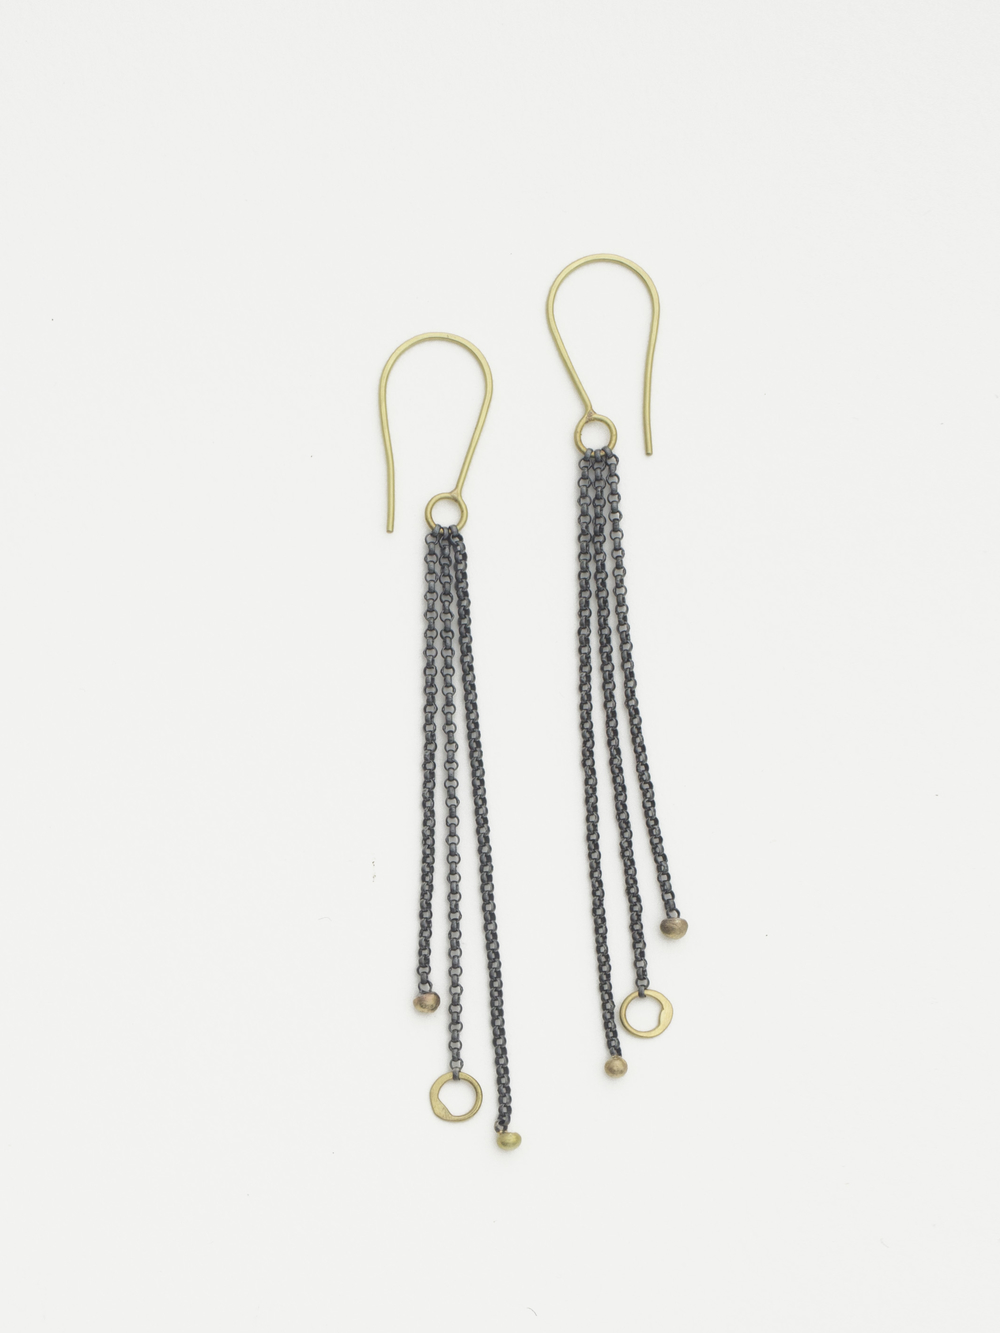 oxi chain earrings.jpg